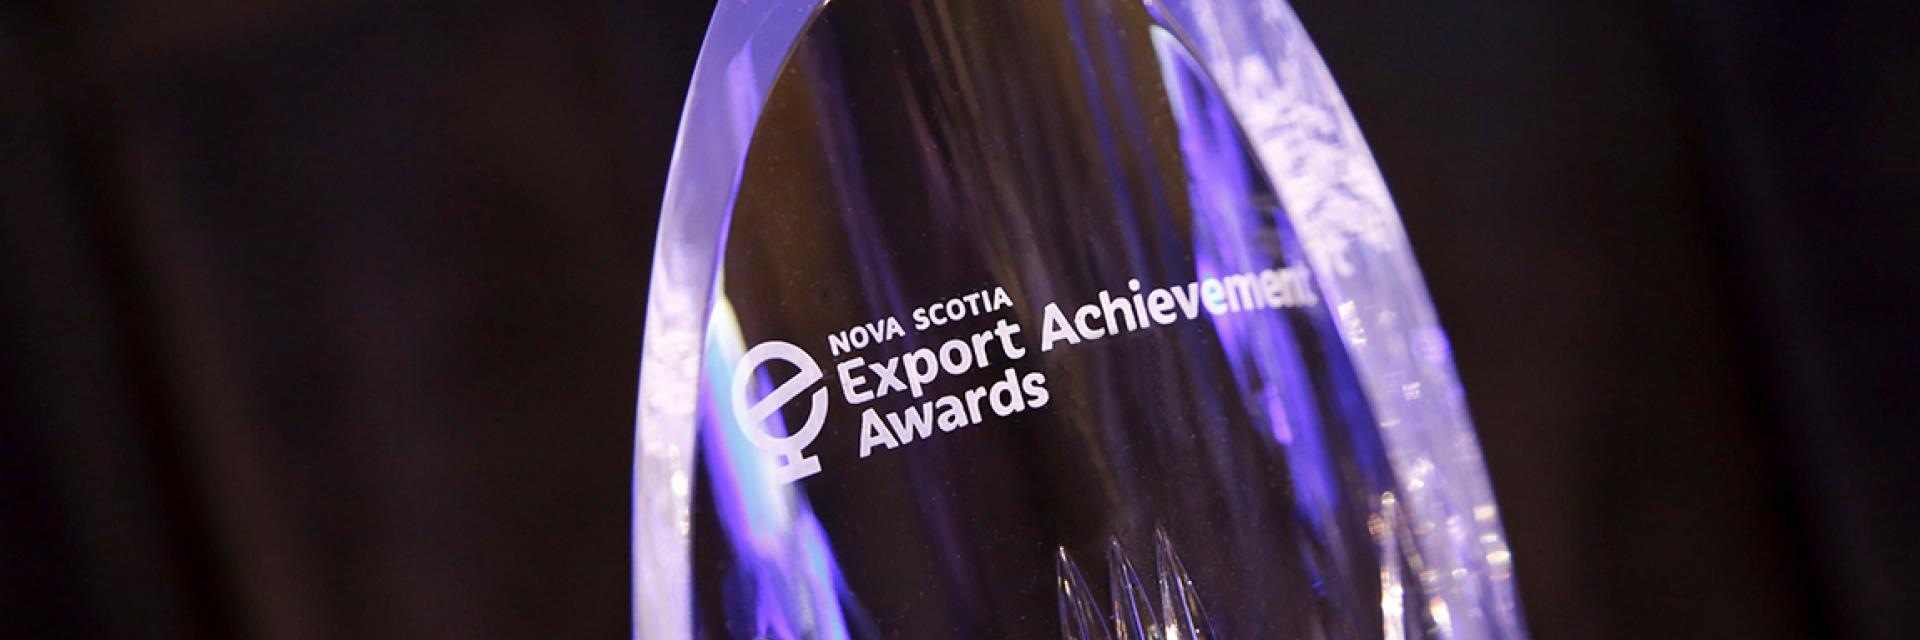 Nova Scotia Export Achievement Awards